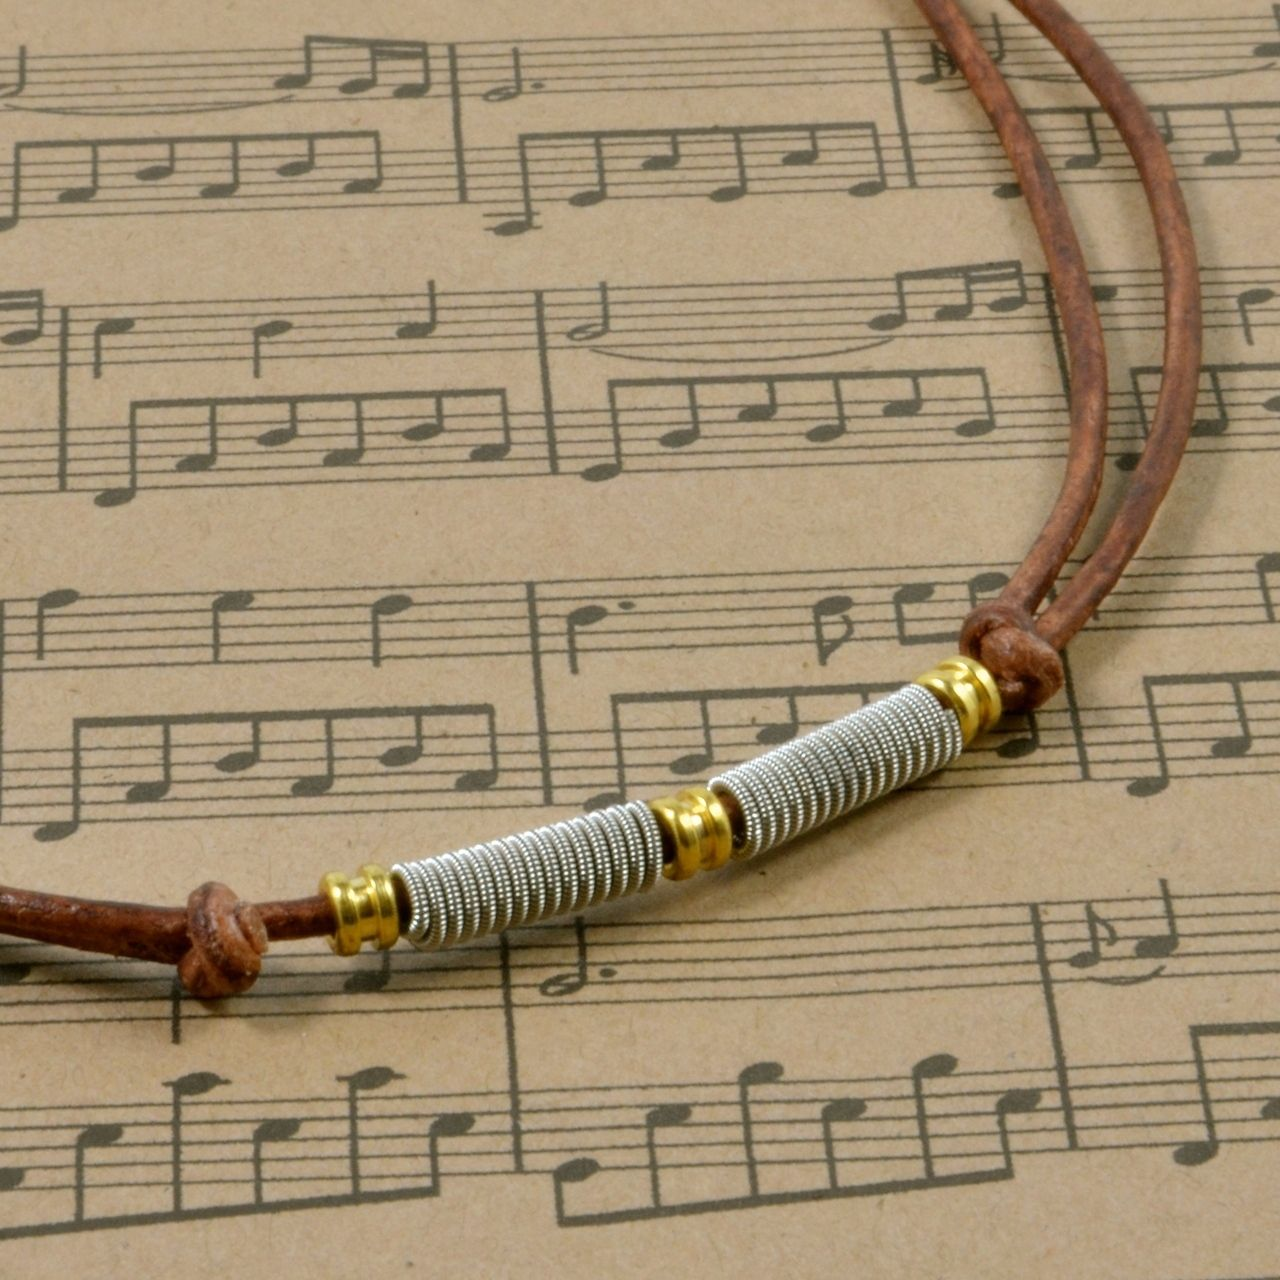 Recycled guitar string jewelry - Adjustable Leather Recycled Guitar String Coil Necklace With Ball End Beads High Strung Studios